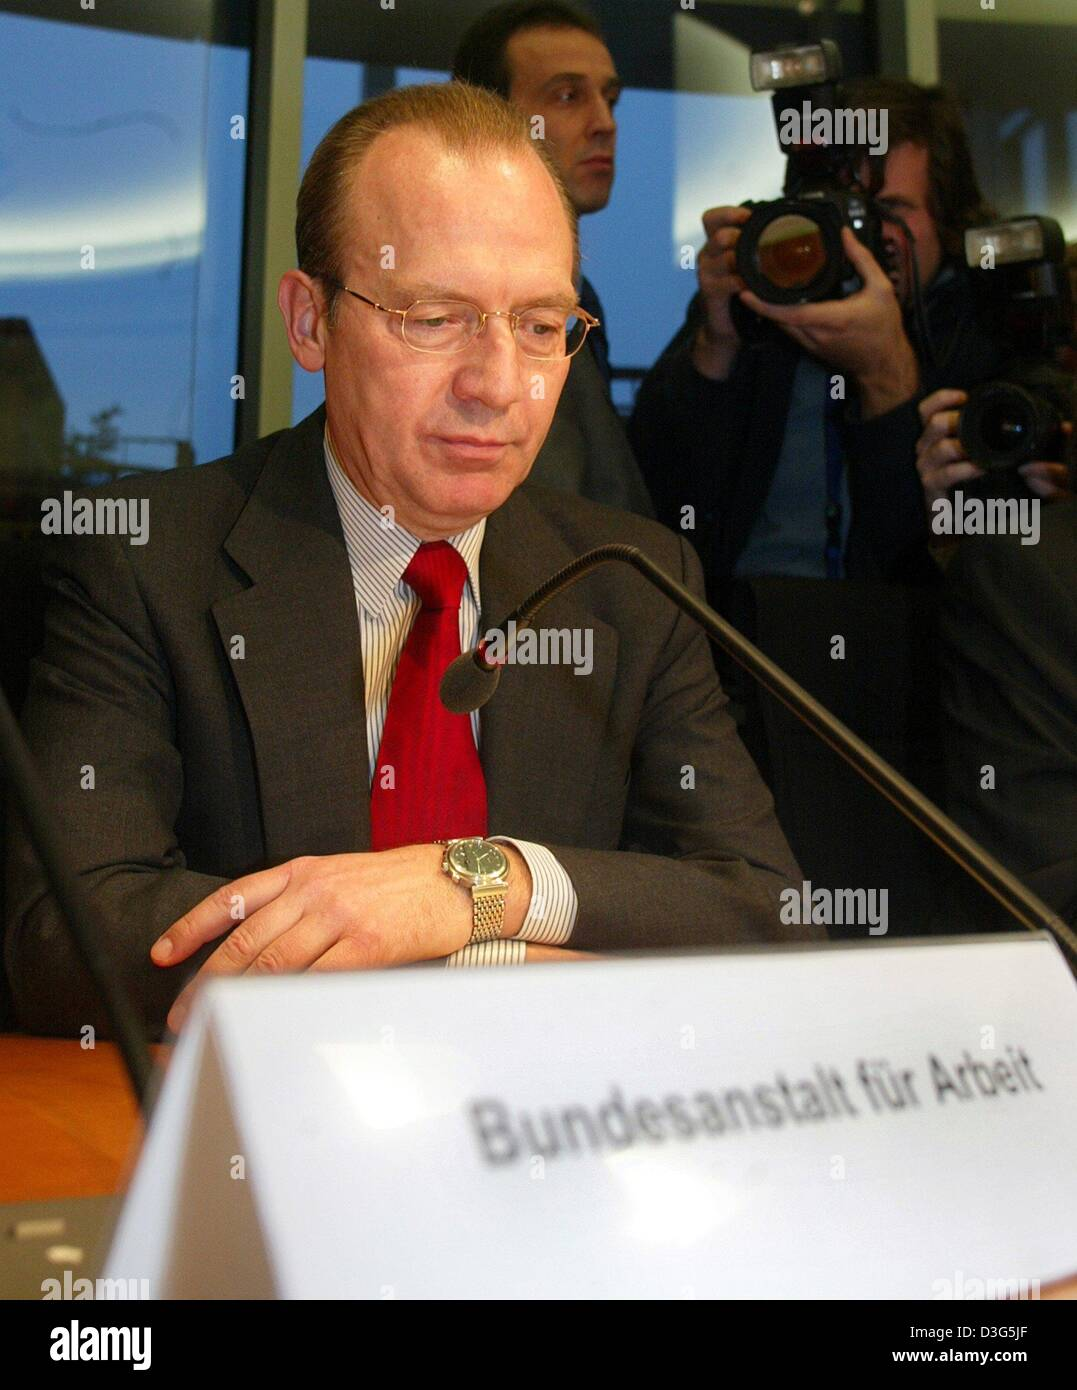 (dpa) - Florian Gerster, Chairman of the board of the Federal Employment Office (Bundesanstalt fuer Arbeit), speaks - Stock Image